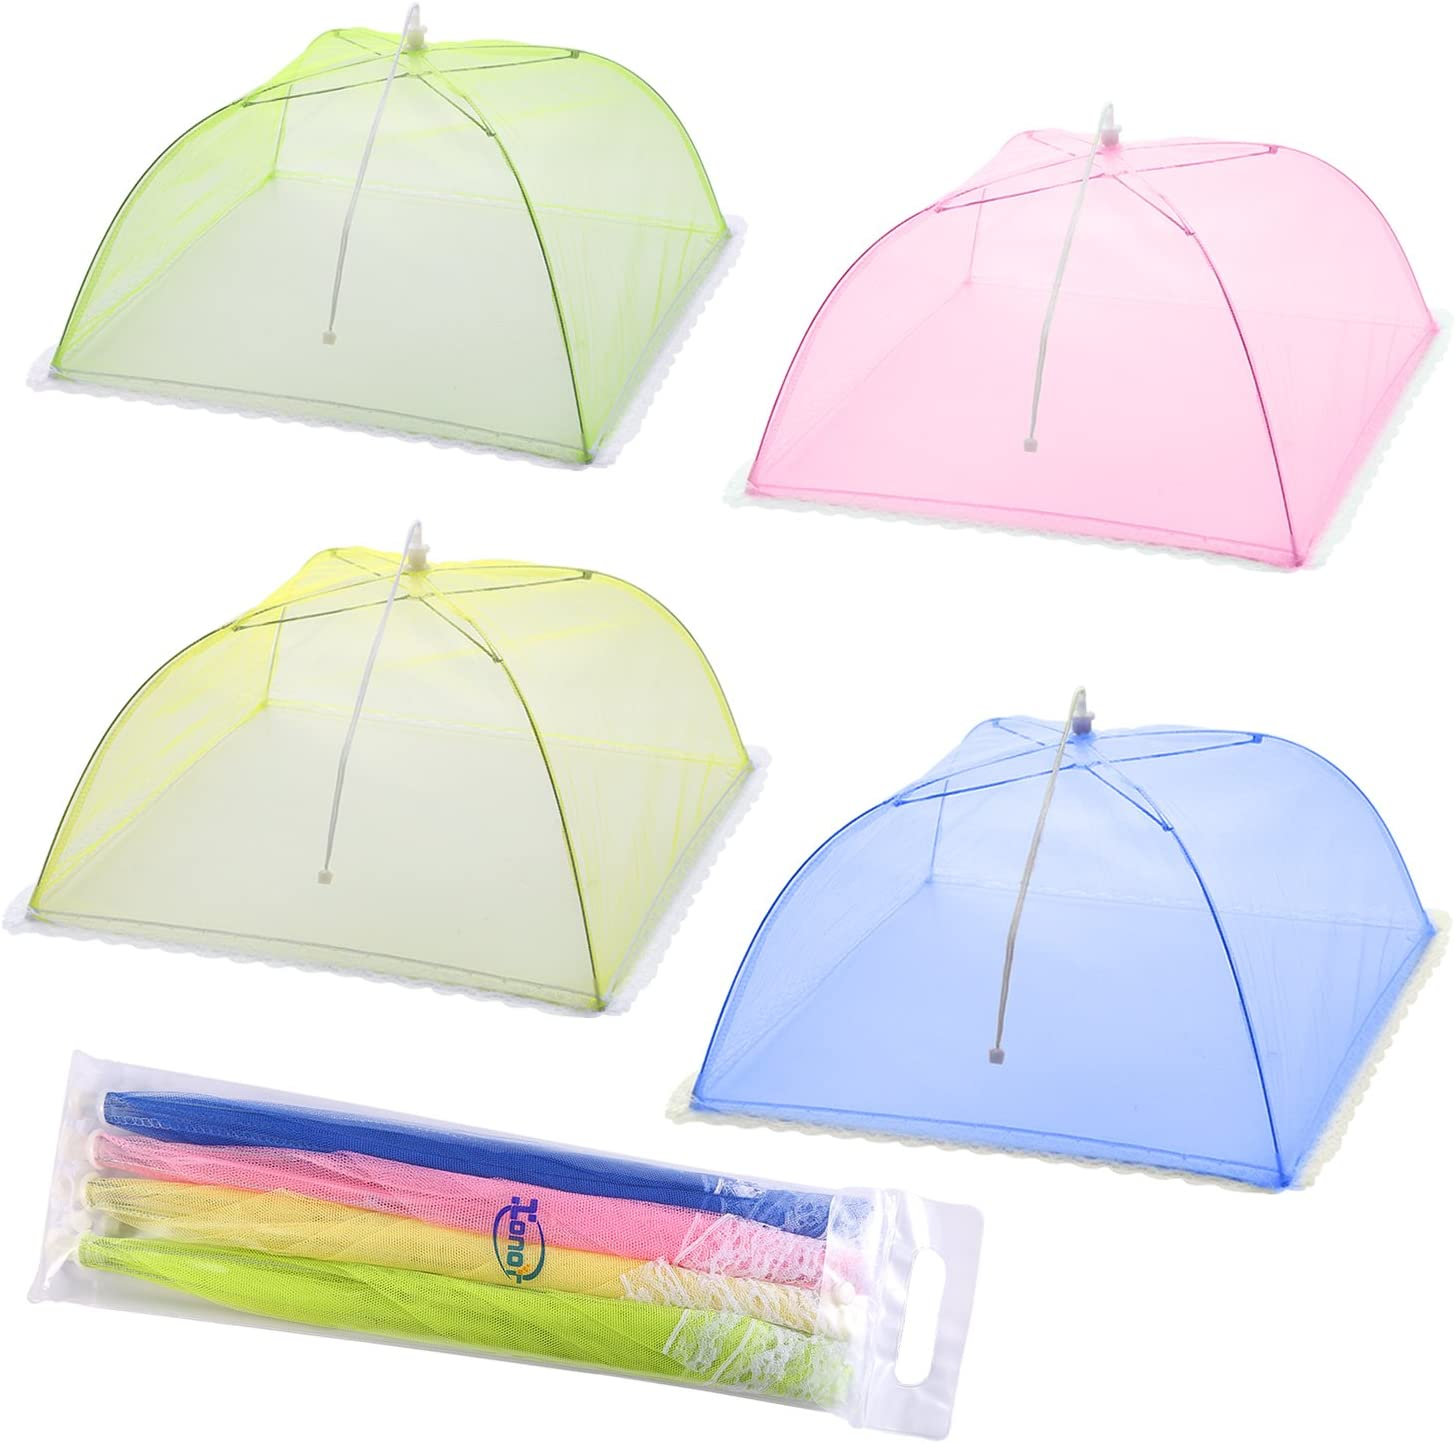 Mesh Screen Food Cover Tents - Set of 4 Umbrella Screens to Keep Bugs And Flies Away From Food at Picnics, BBQ & More - 4 Colors (Pink, Green, Blue, Yellow)